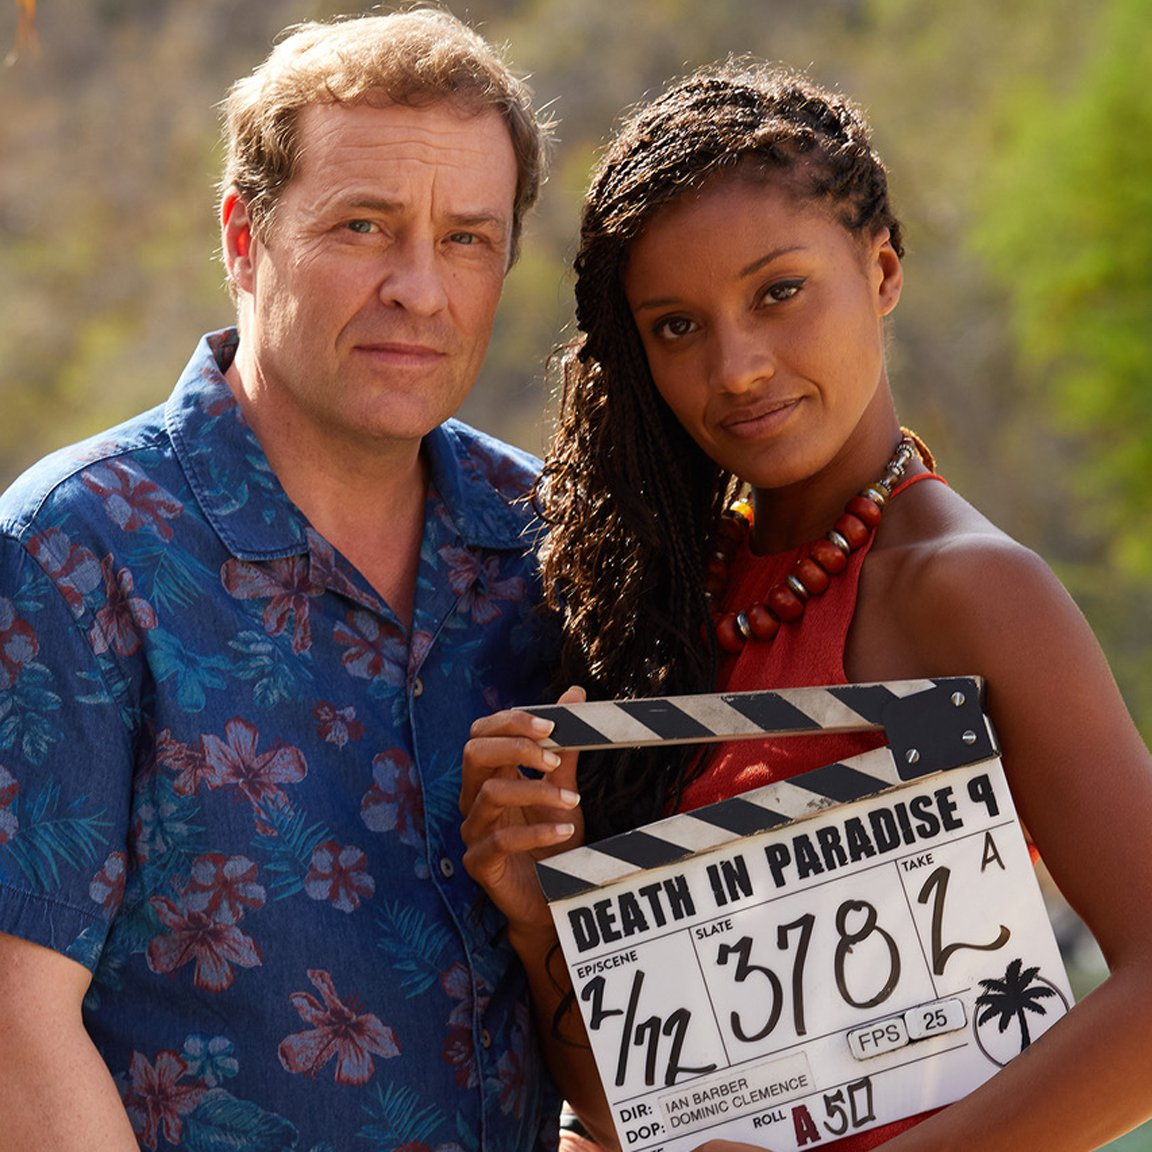 Death in Paradise new series is filming with Aude Legastelois replacing Josephine Jobert